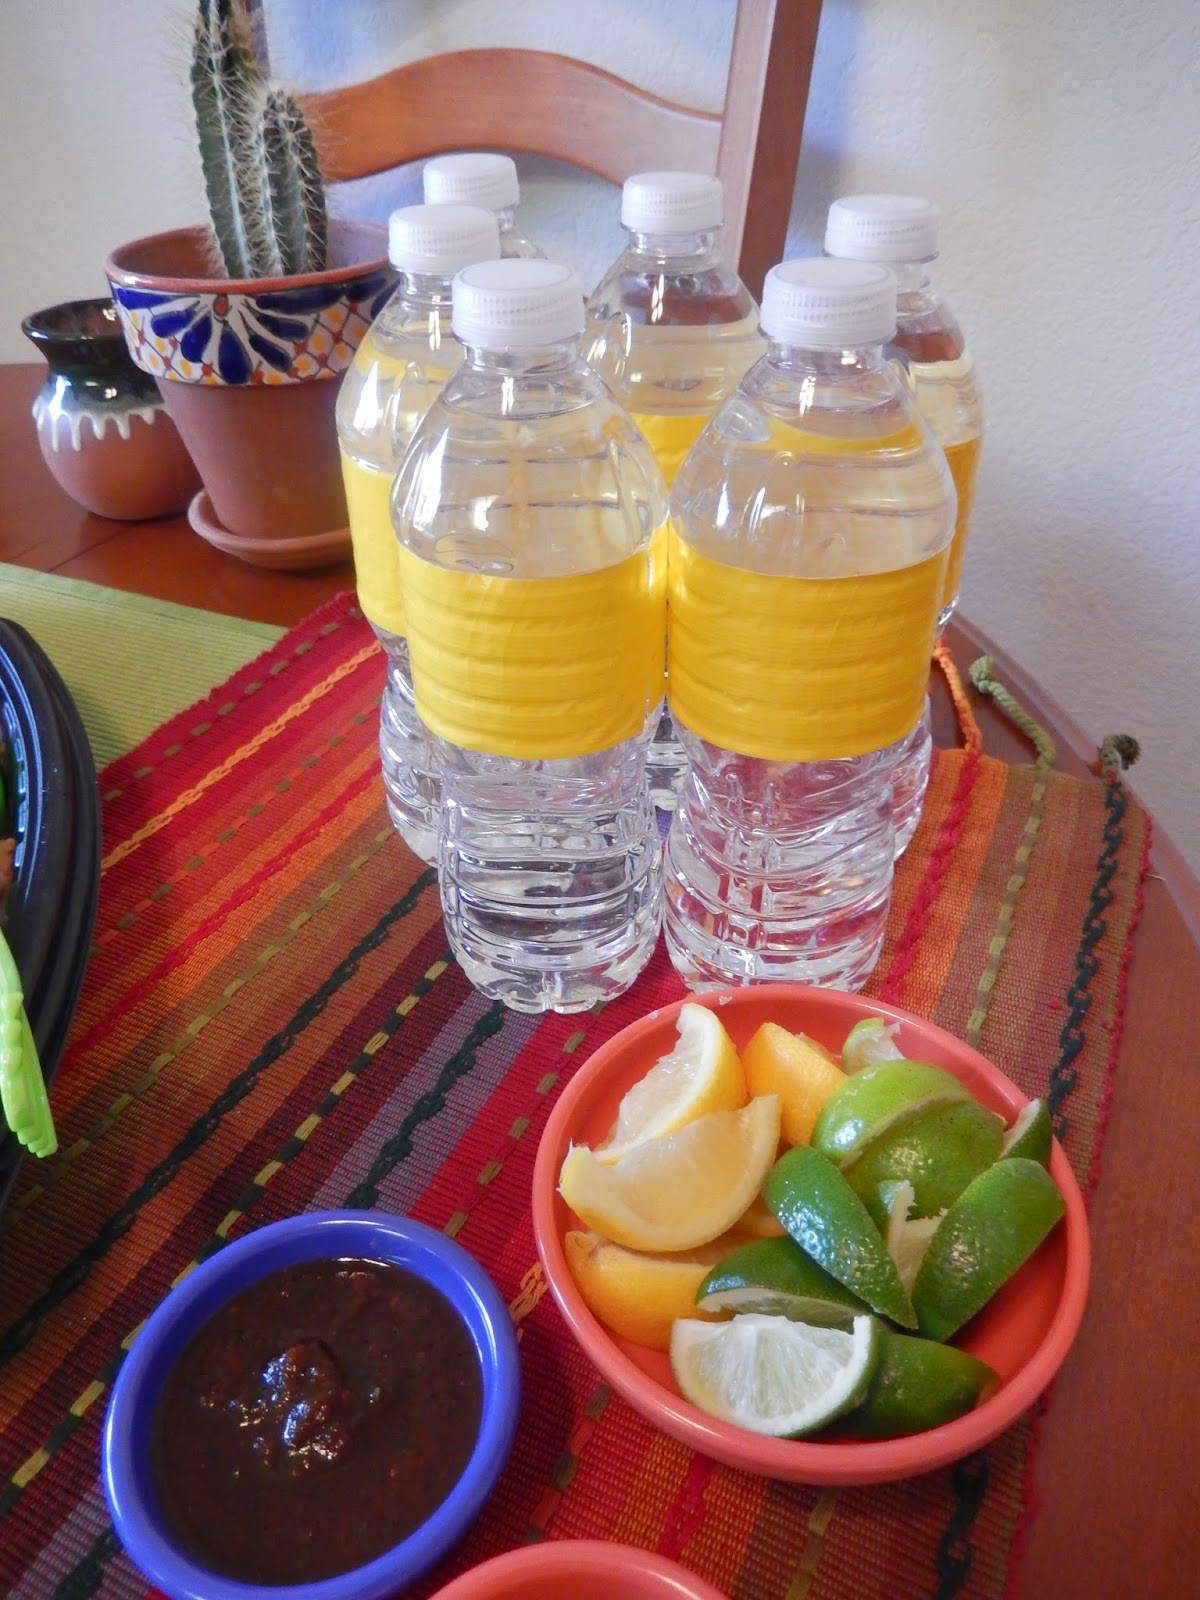 Water%2BLemon%2BLime%2BCrafty%2BBottles Weight Loss Recipes Healthy Meetings (or Parties) Made Easy